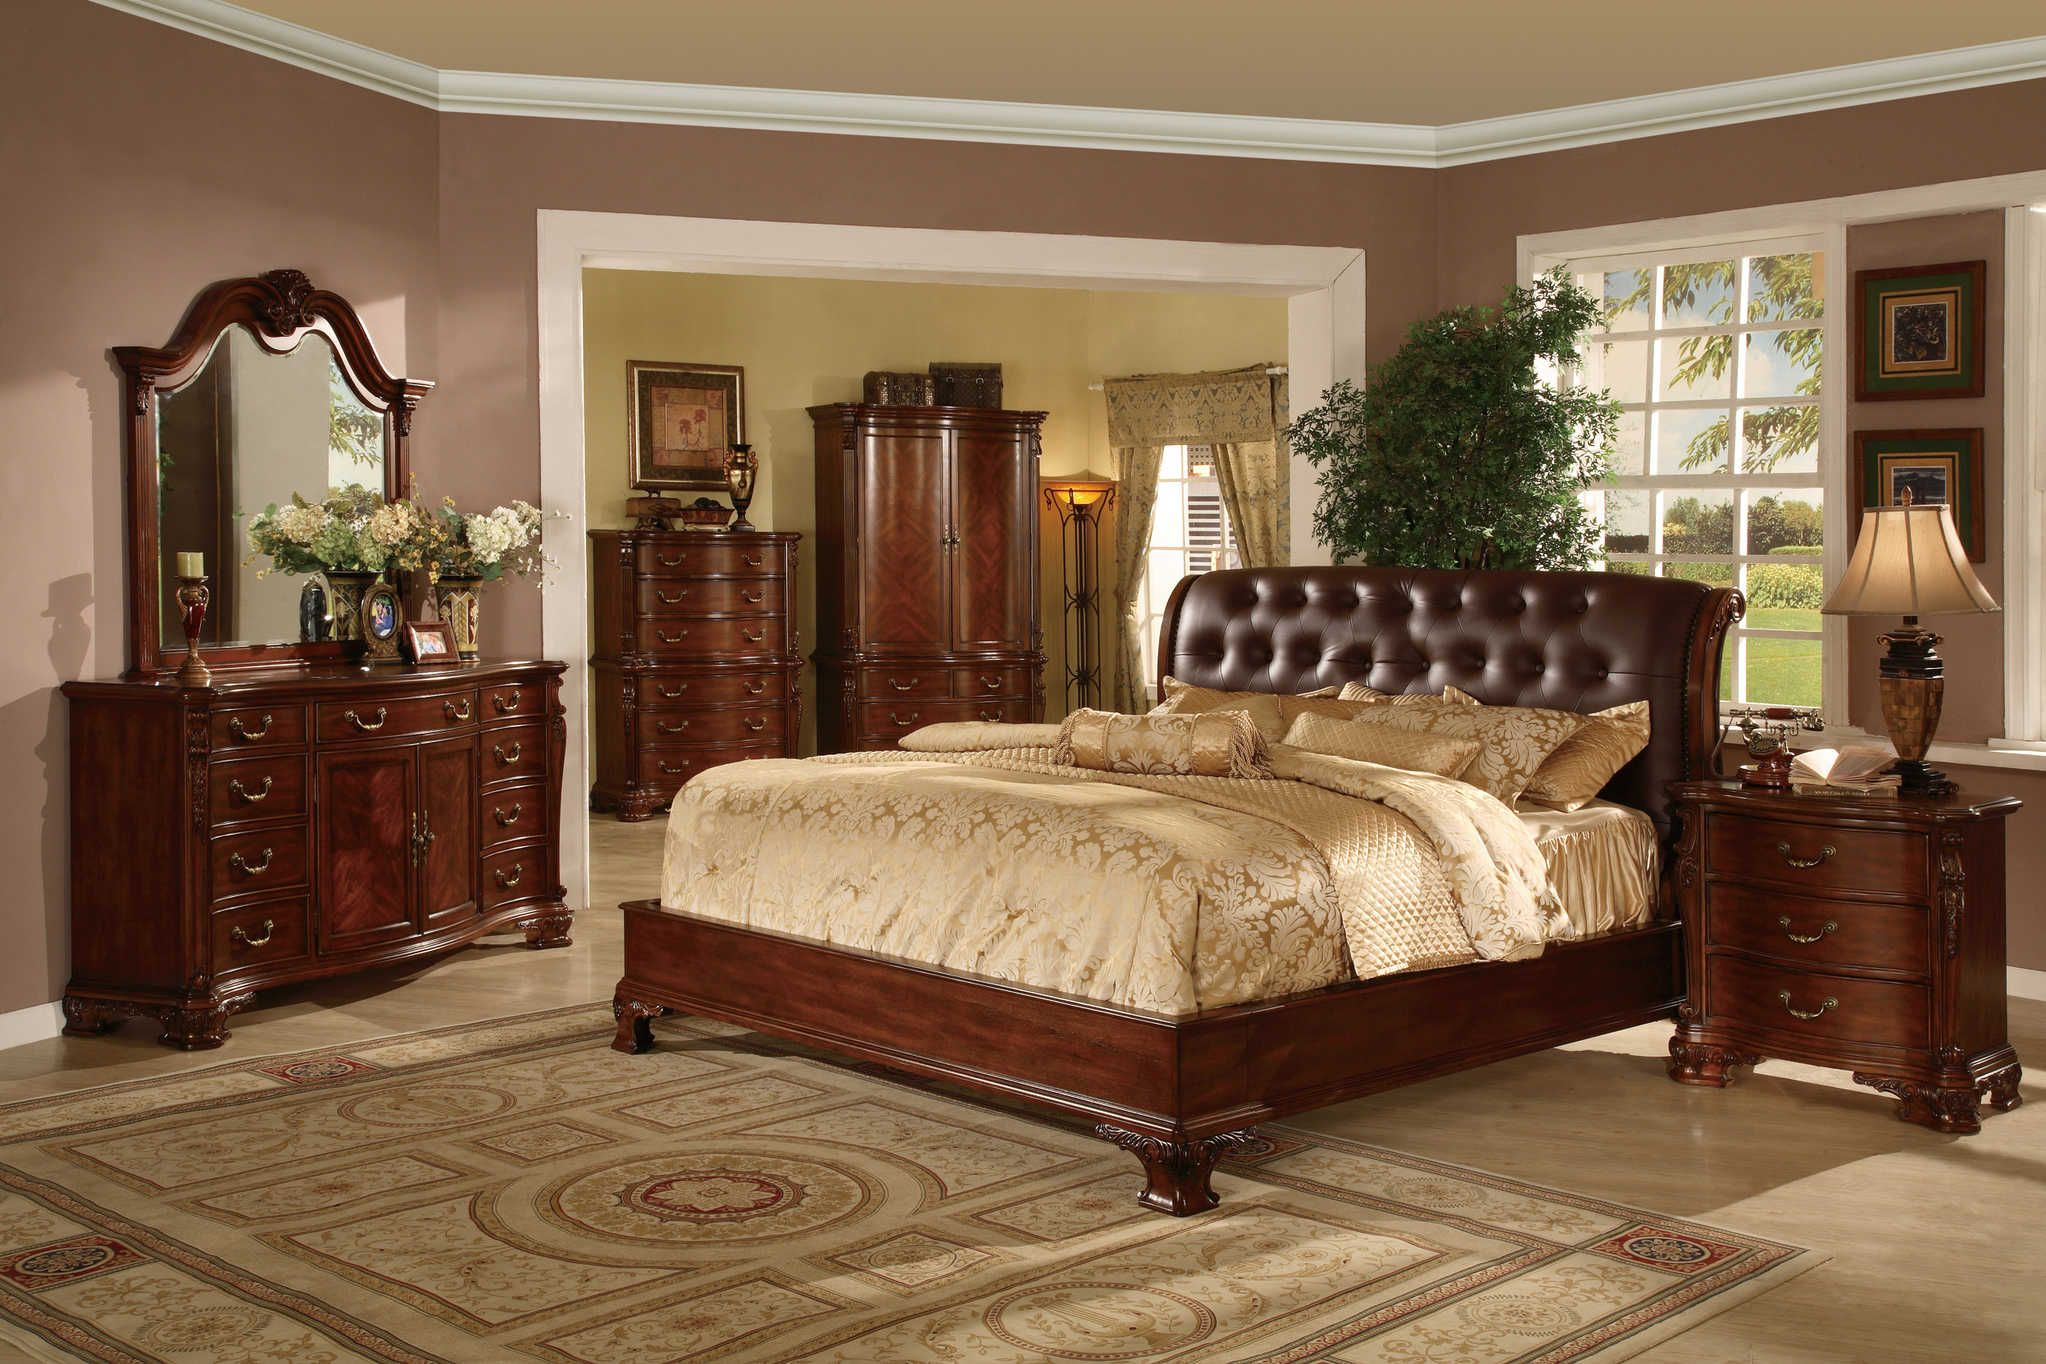 Tufted leather headboard bed traditional king and queen wood bedroom set in brown finish 8690 for Brown leather bedroom furniture